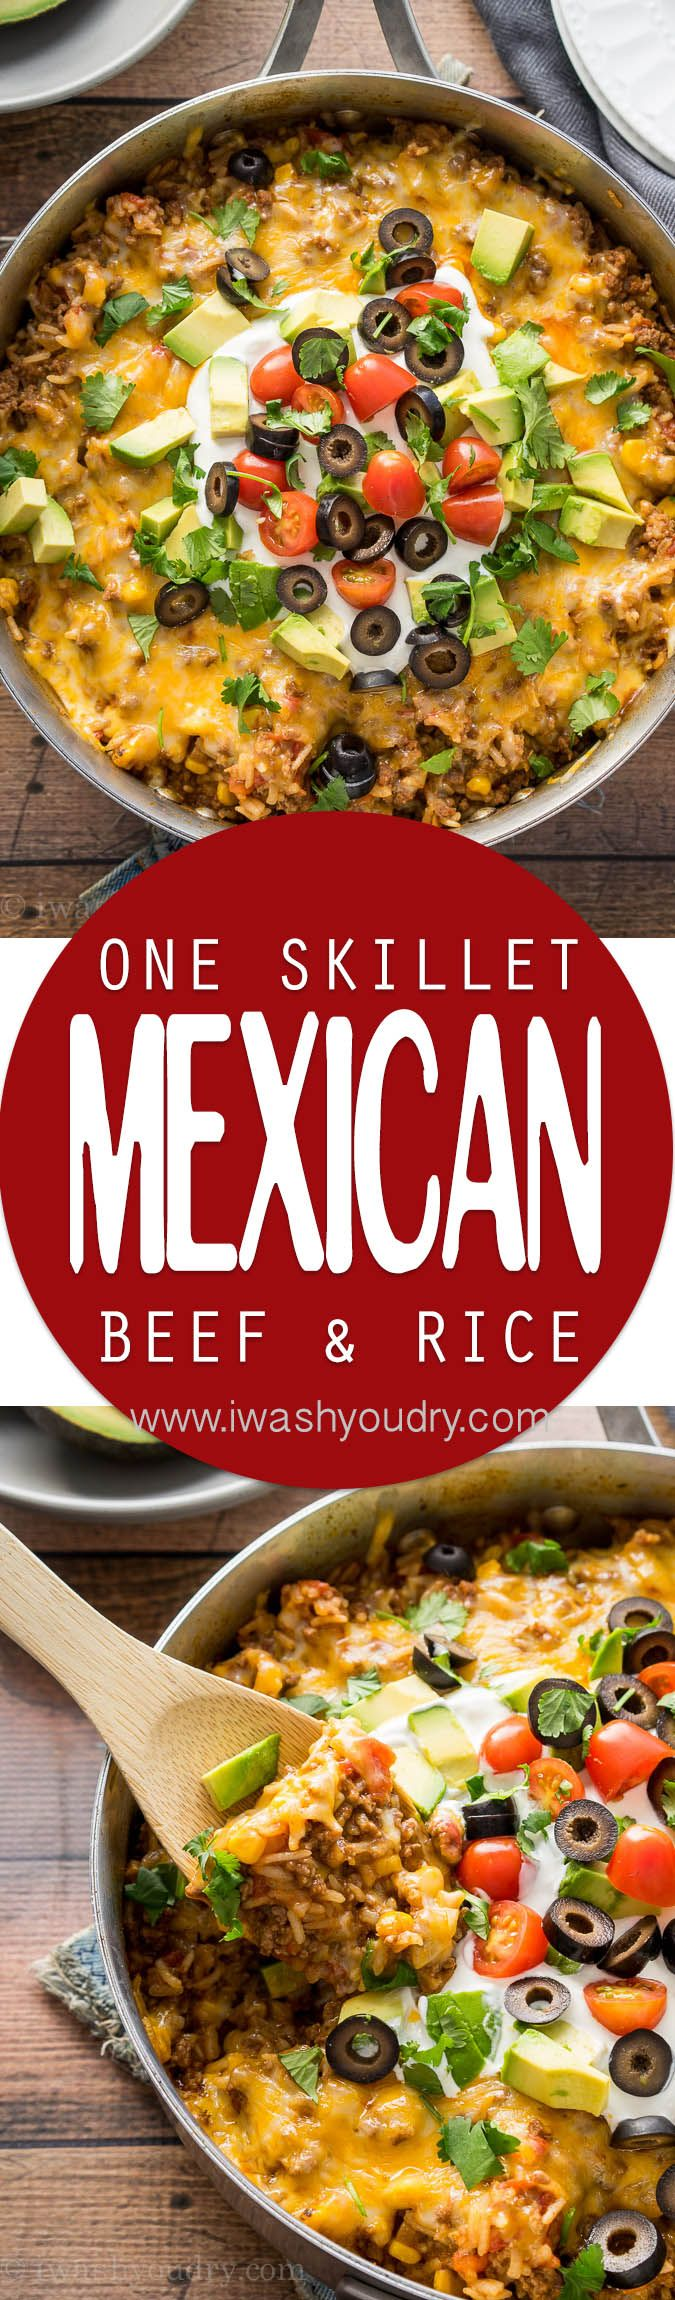 Mexican Beef and Rice Skillet - Super quick and easy and we ate the leftovers wrapped up in tortillas!